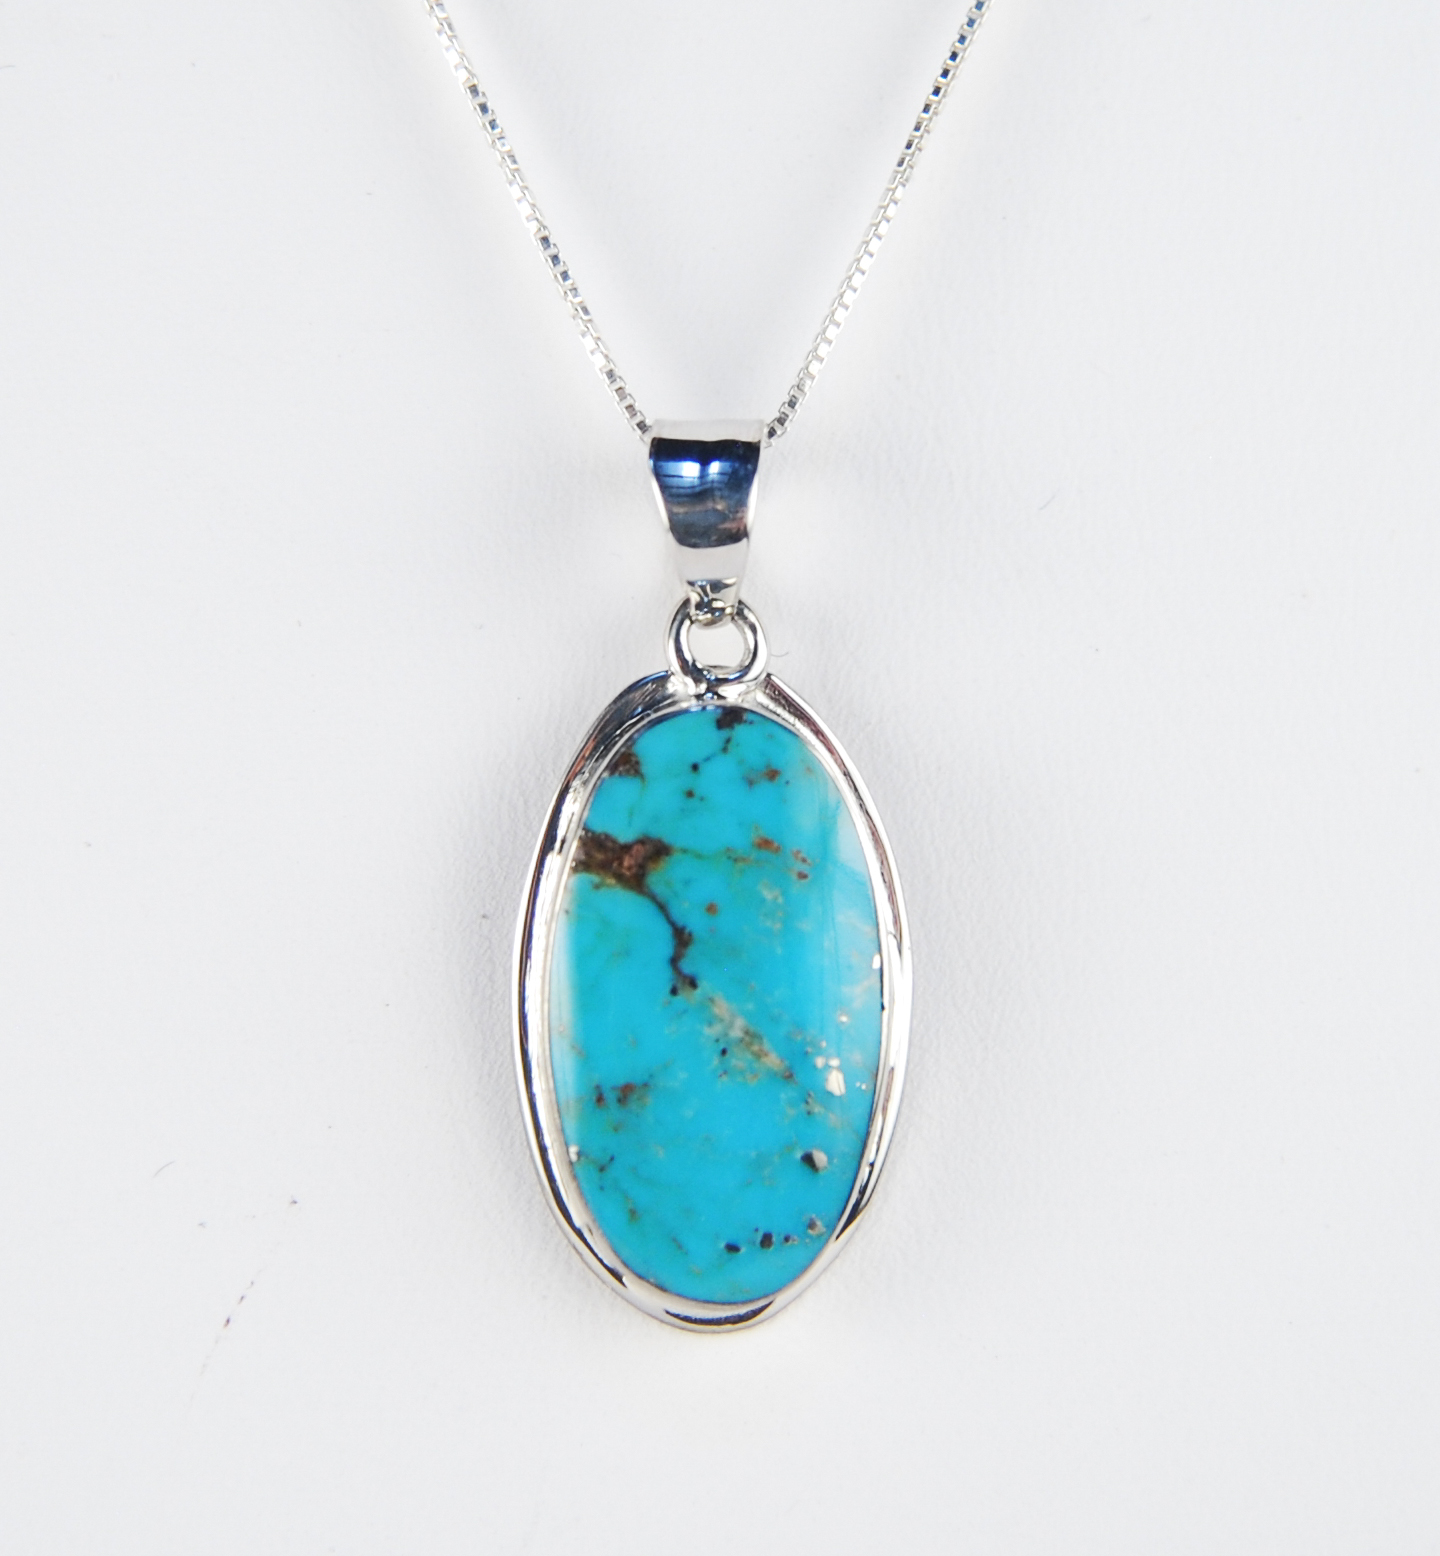 660-965  Sterling Silver Pendant With One Cabochon Turquoise $75.00